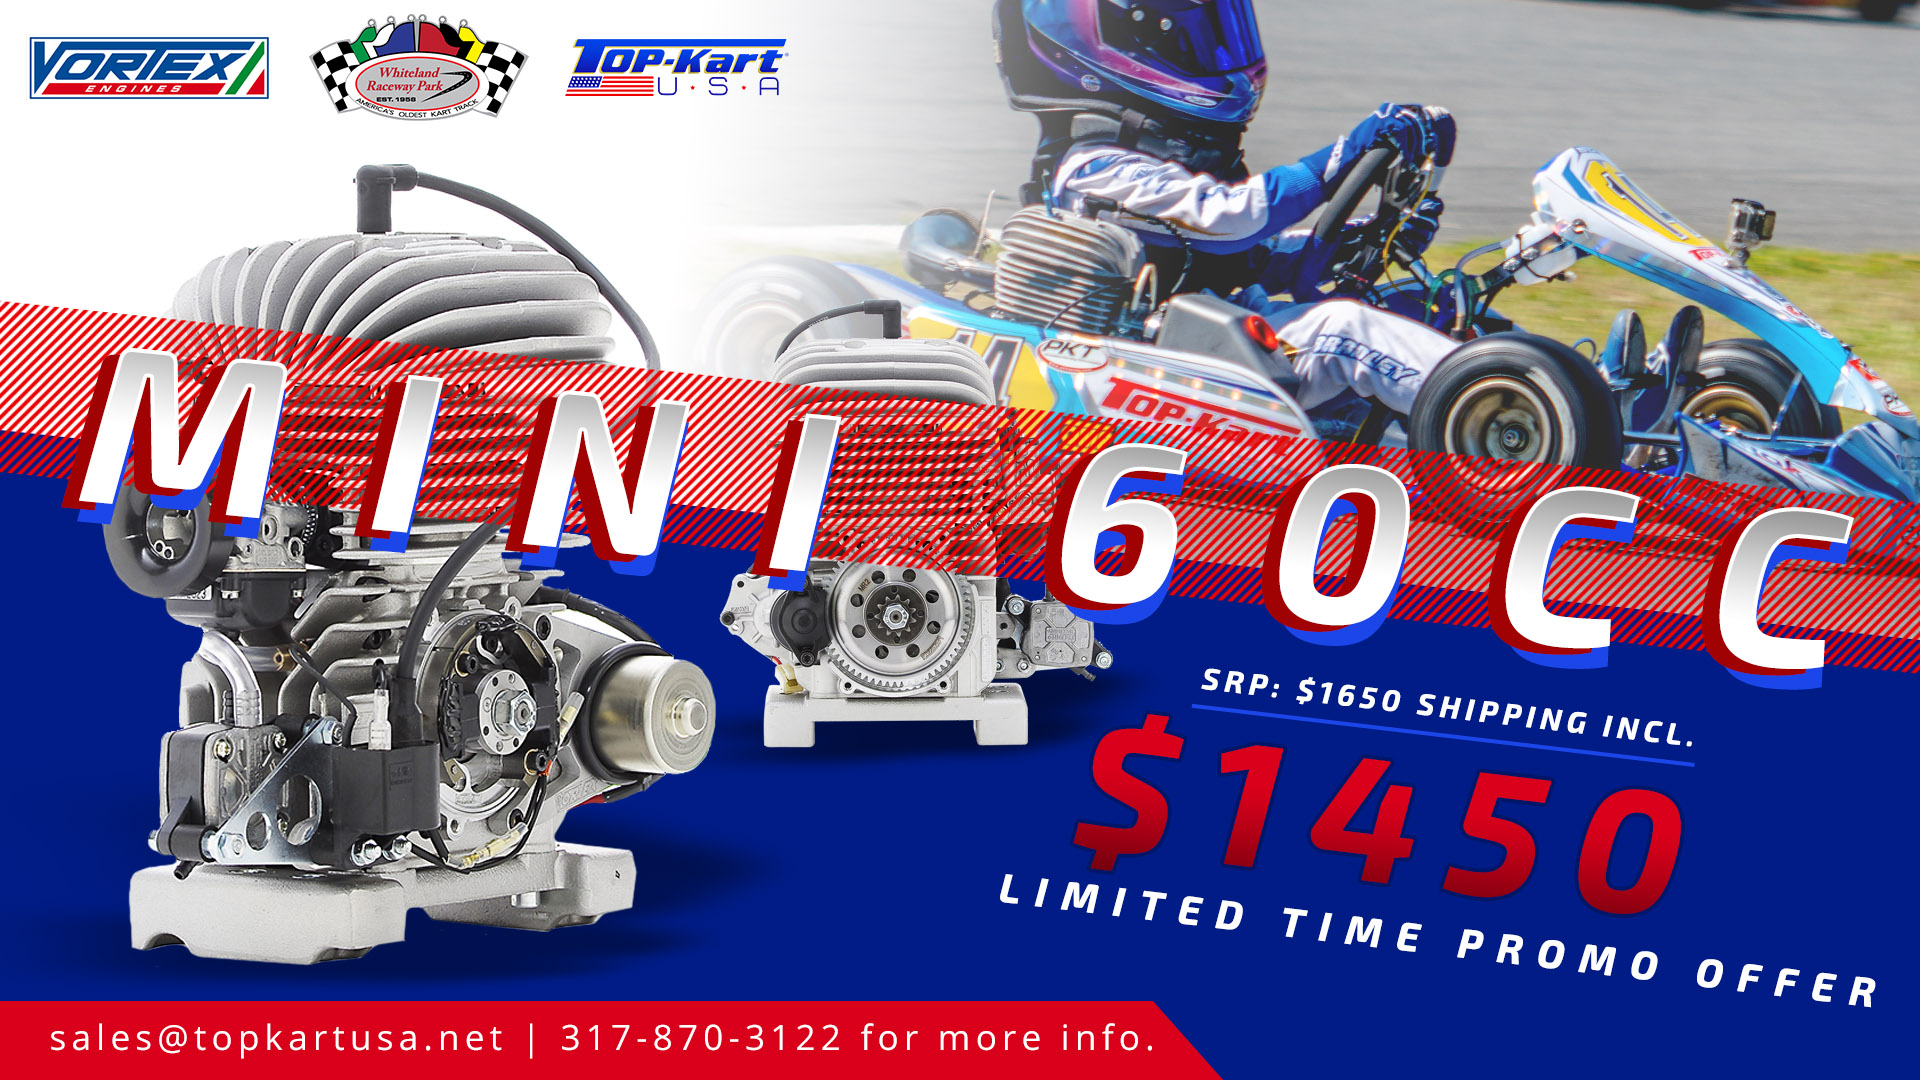 Top Kart USA - Official North American Distributor of Top